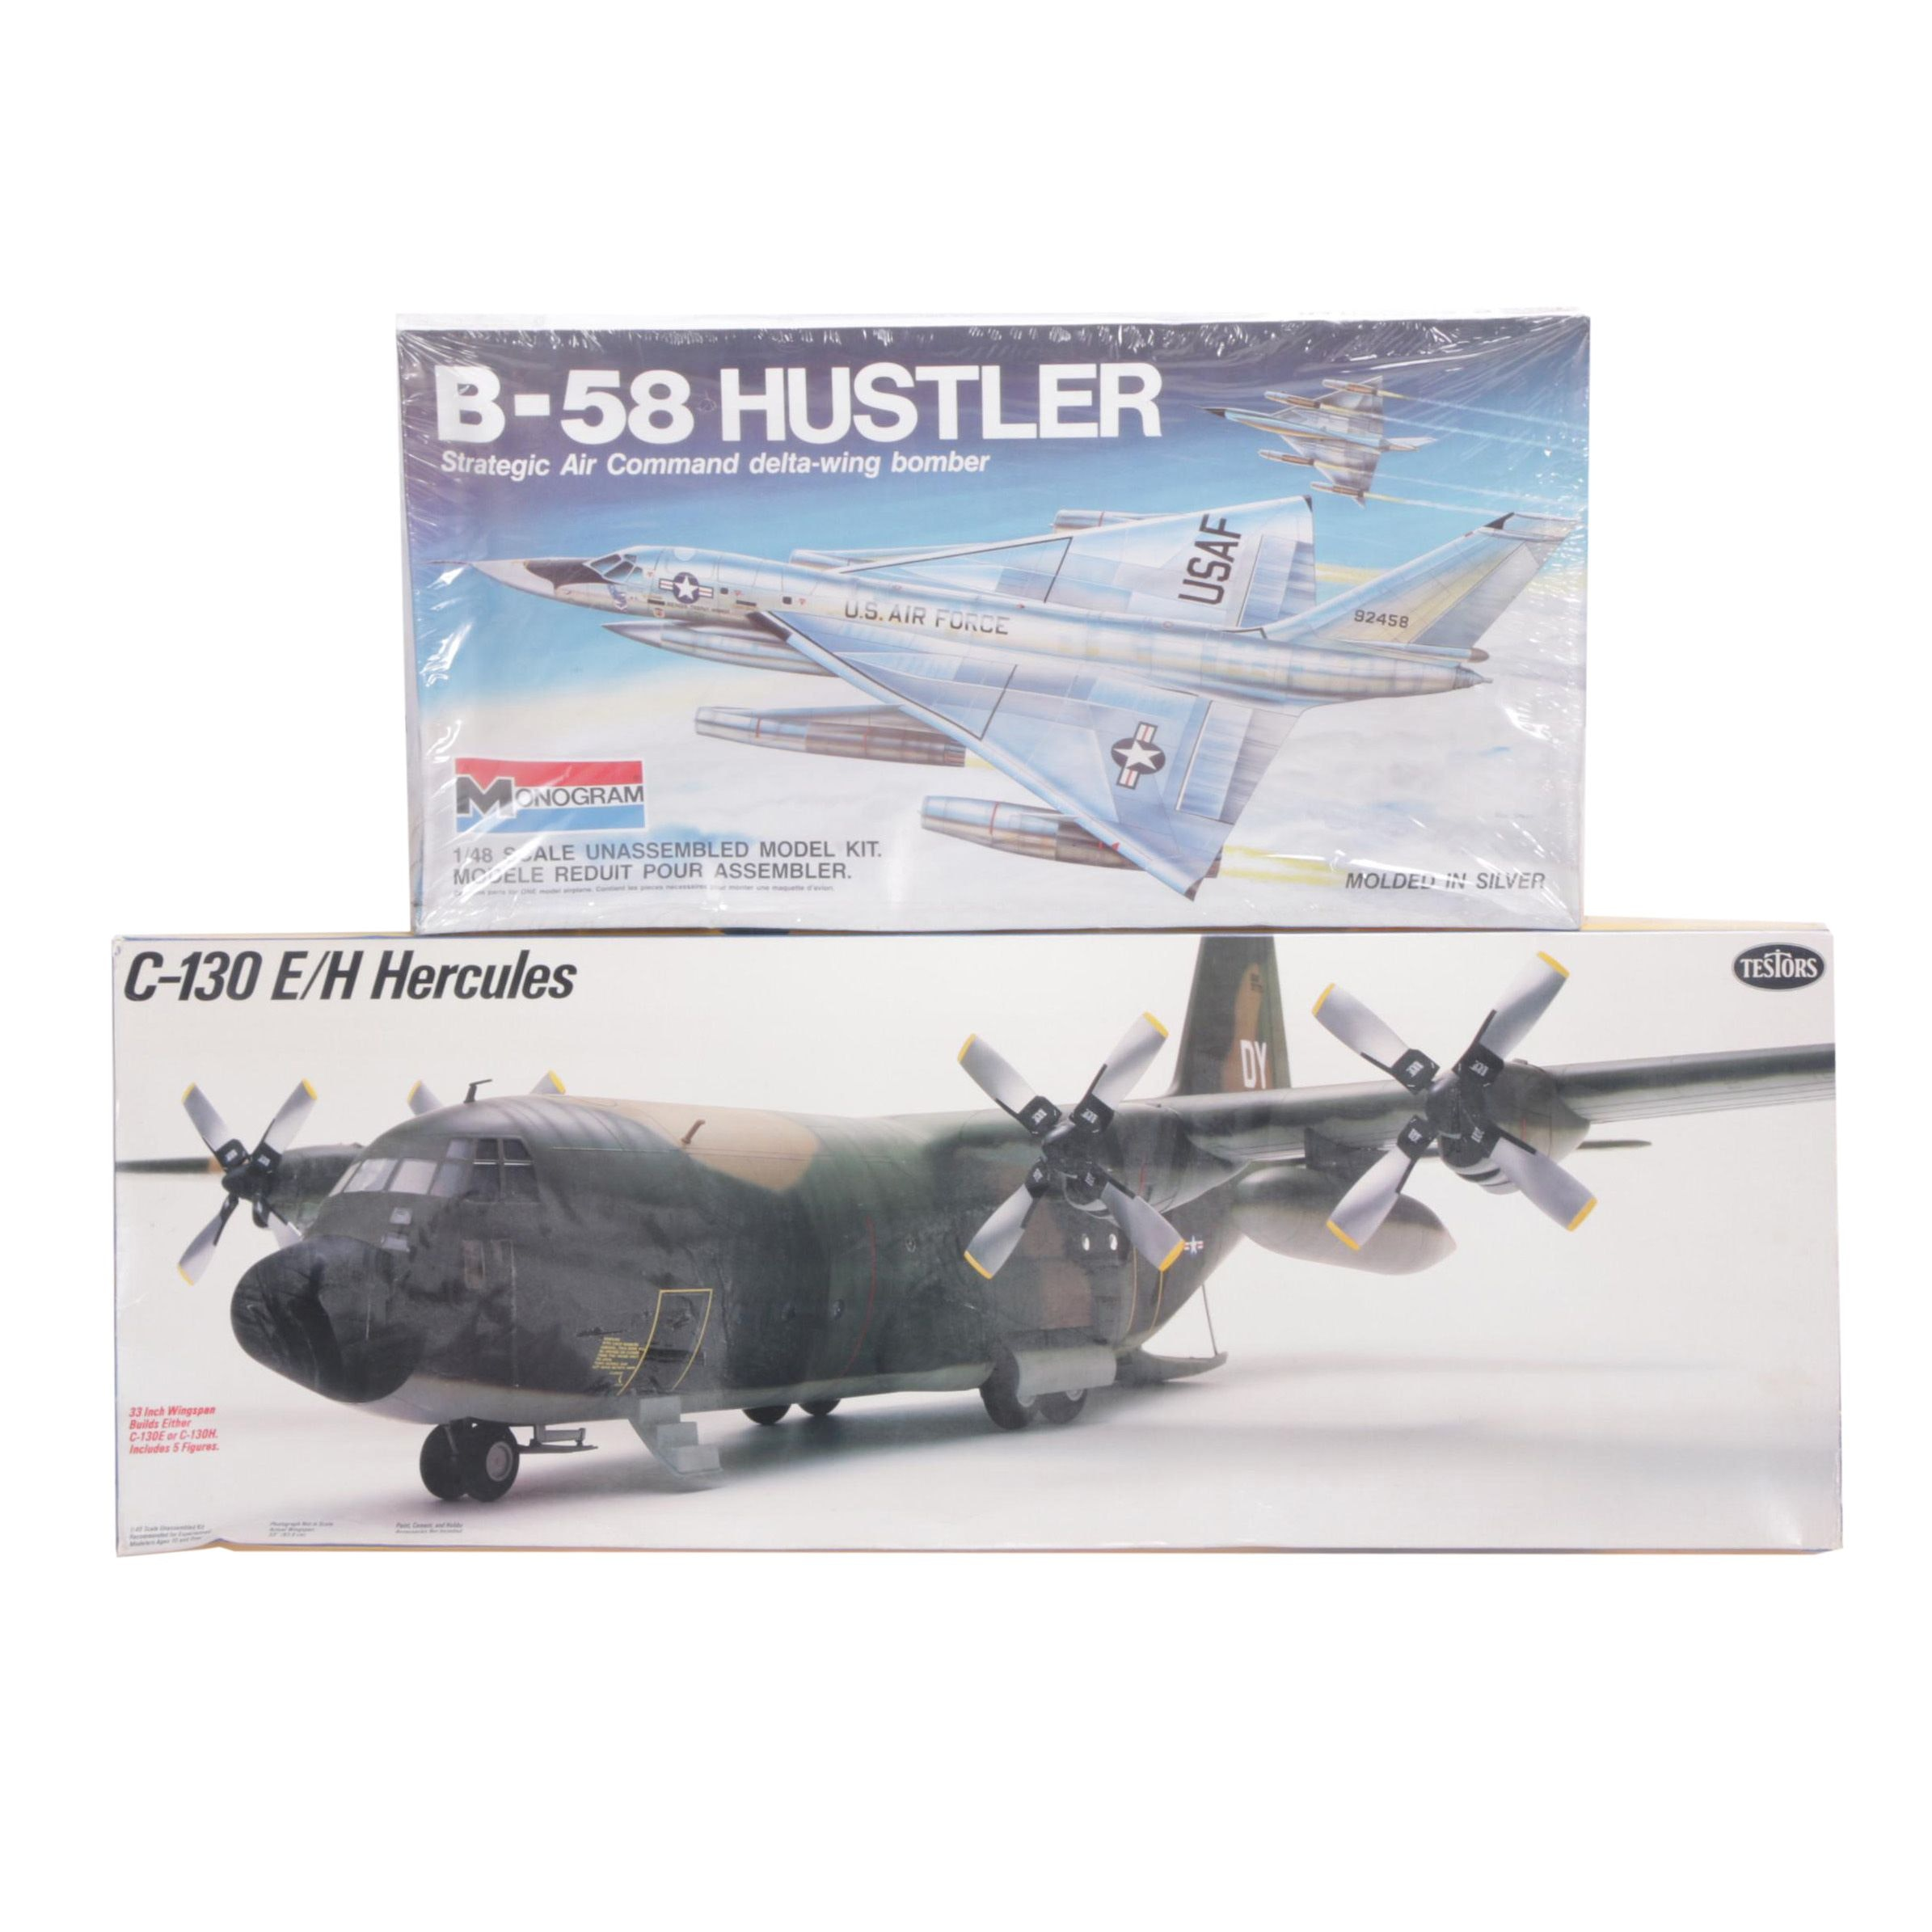 1:48 Scale Military Aircraft Model Kits